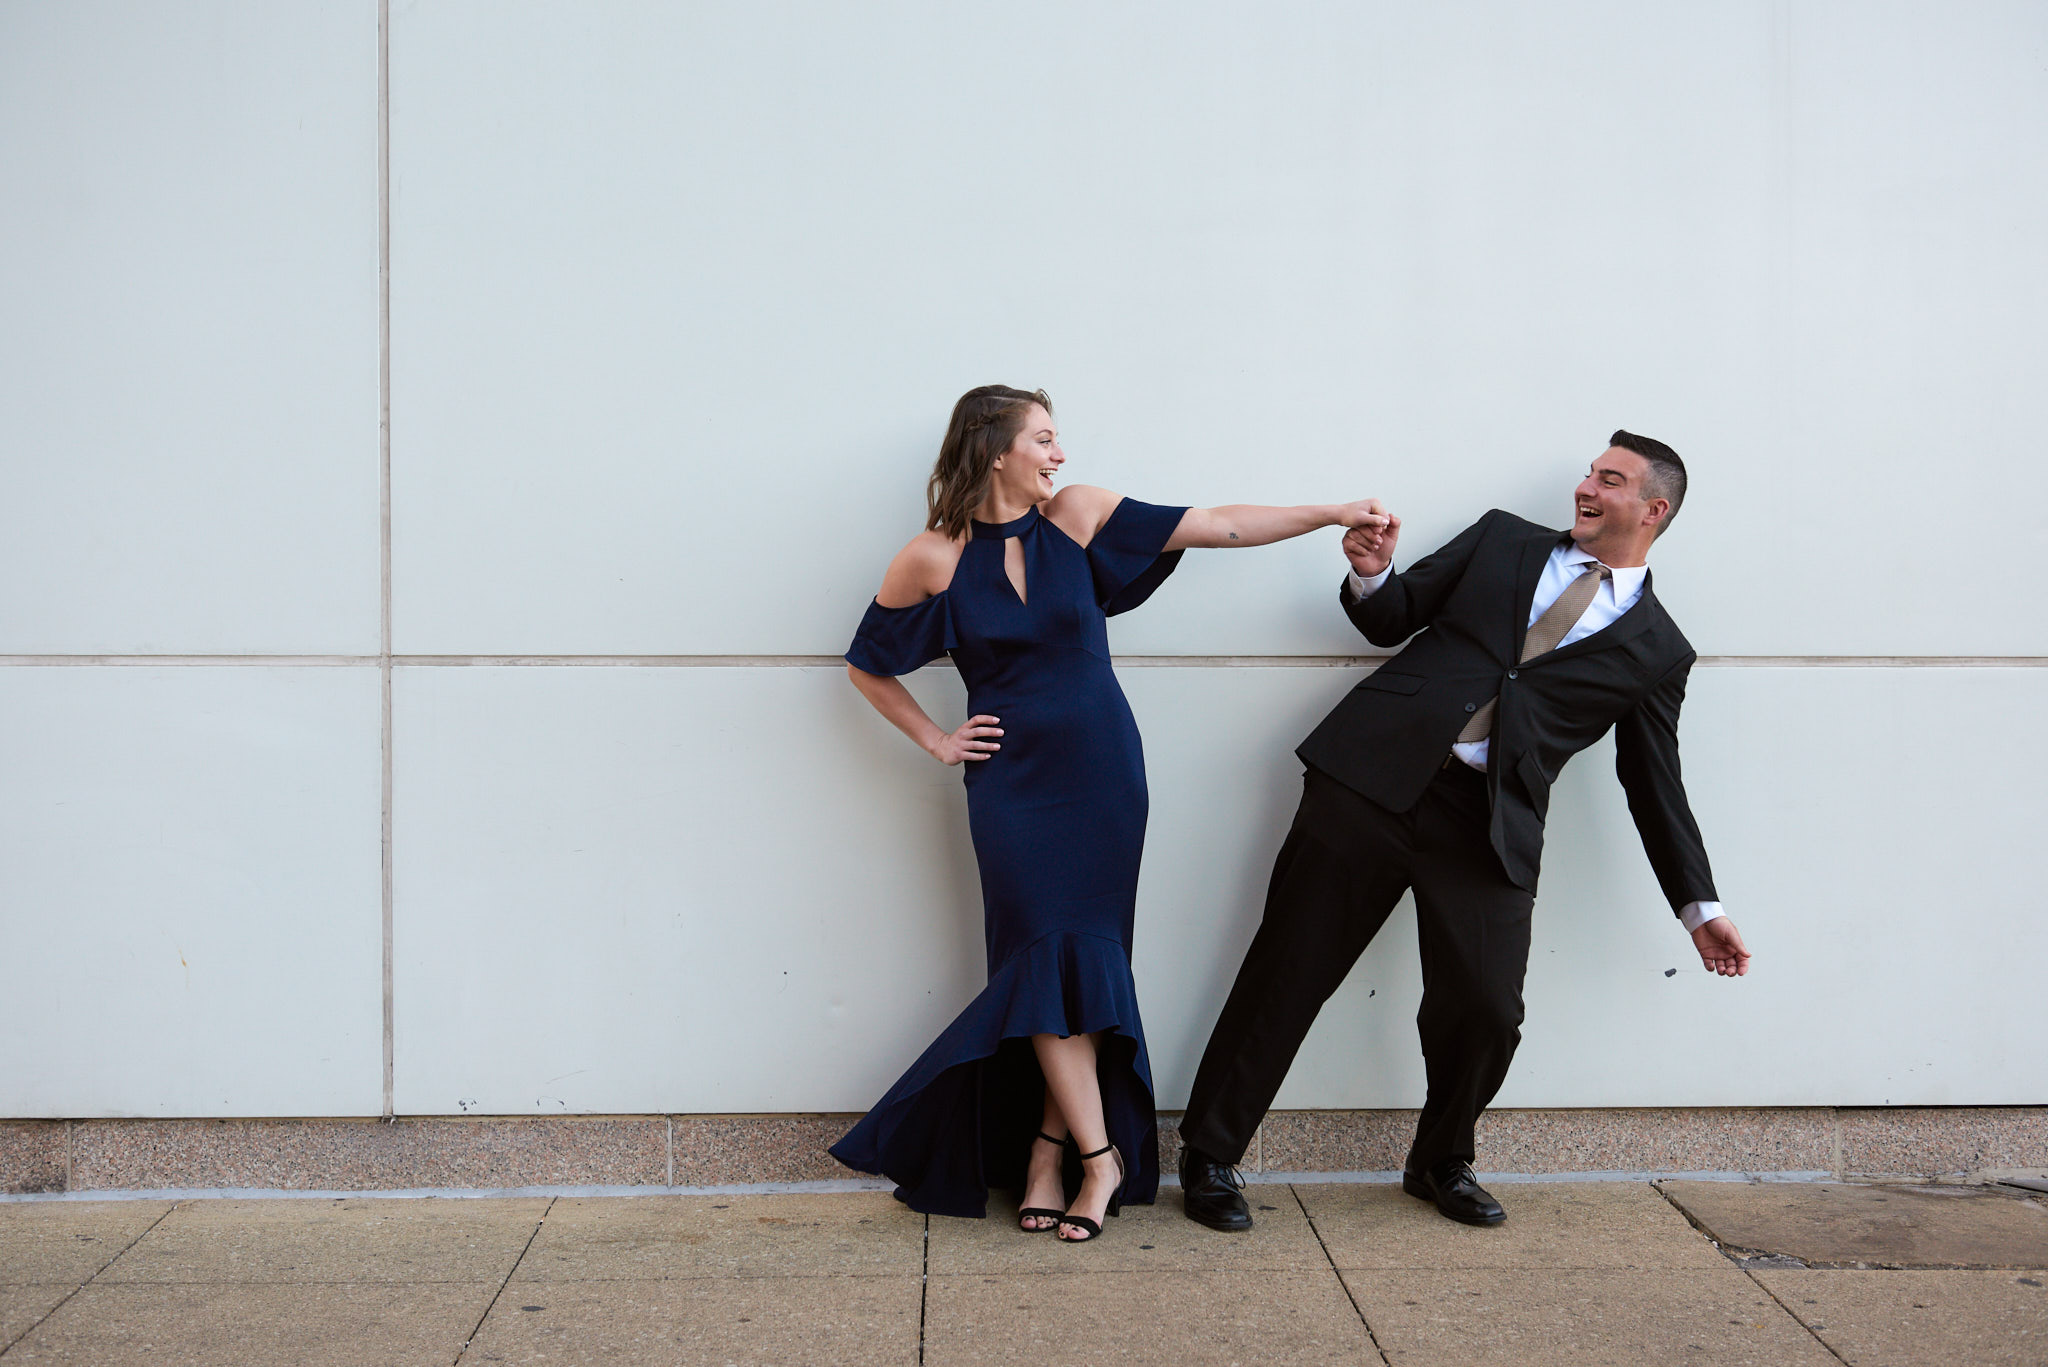 Dancing engagement in front of white wall